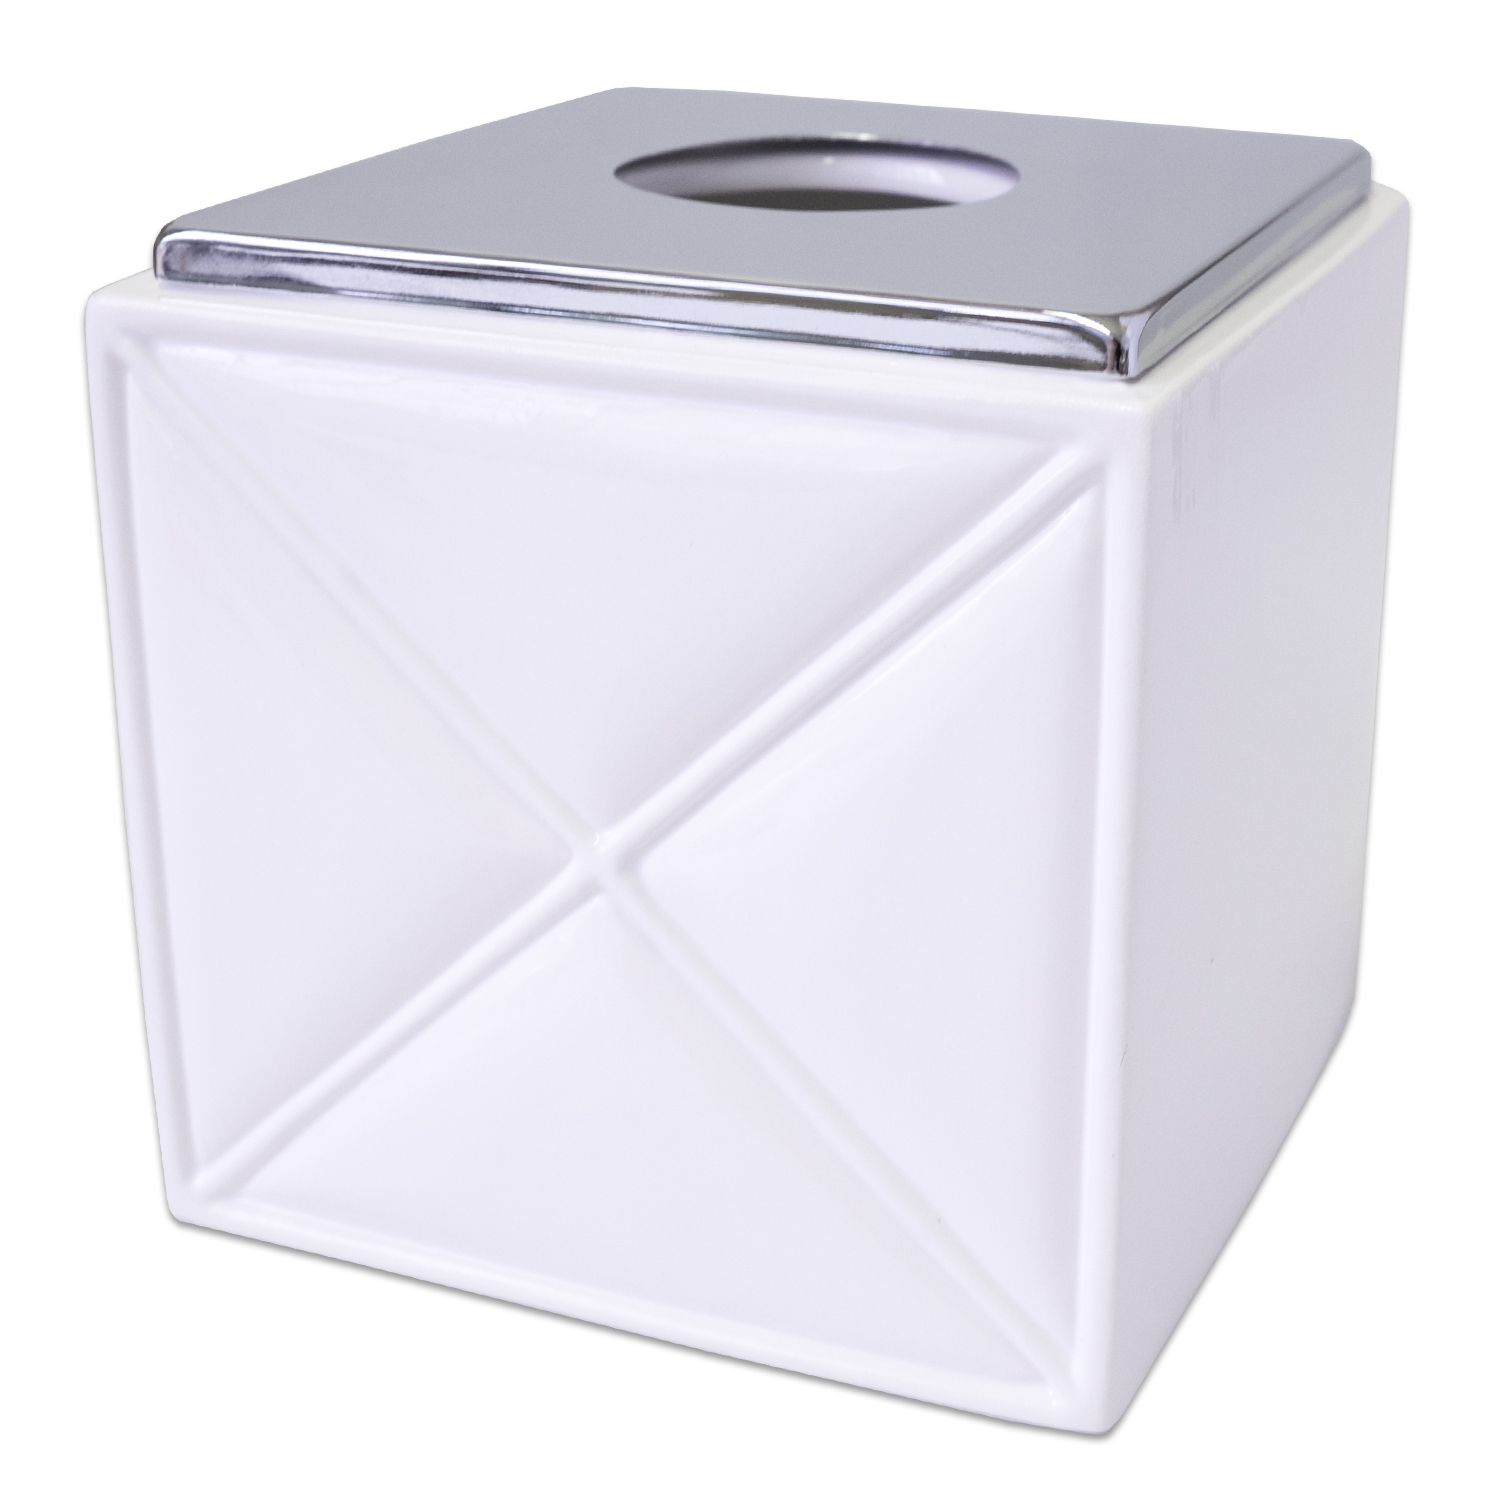 Popular Bath Quilt Accessory Collection White Chrome Ceramic Tissue Box Cover by Popular Bath Products